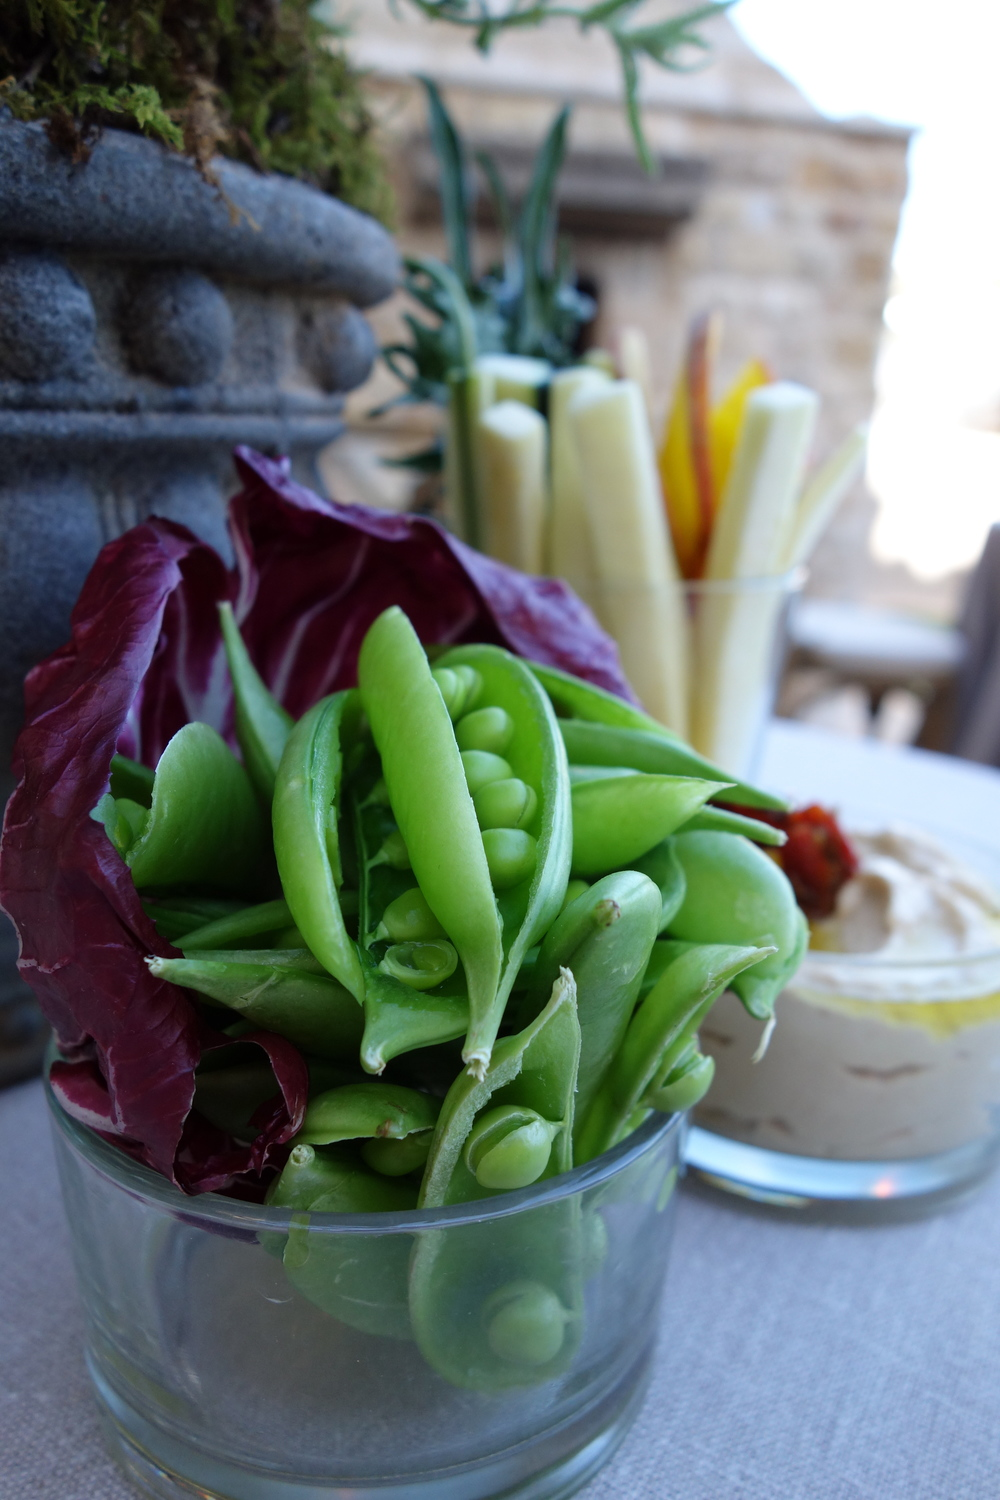 Sugar Snap Peas and Hummus.jpg